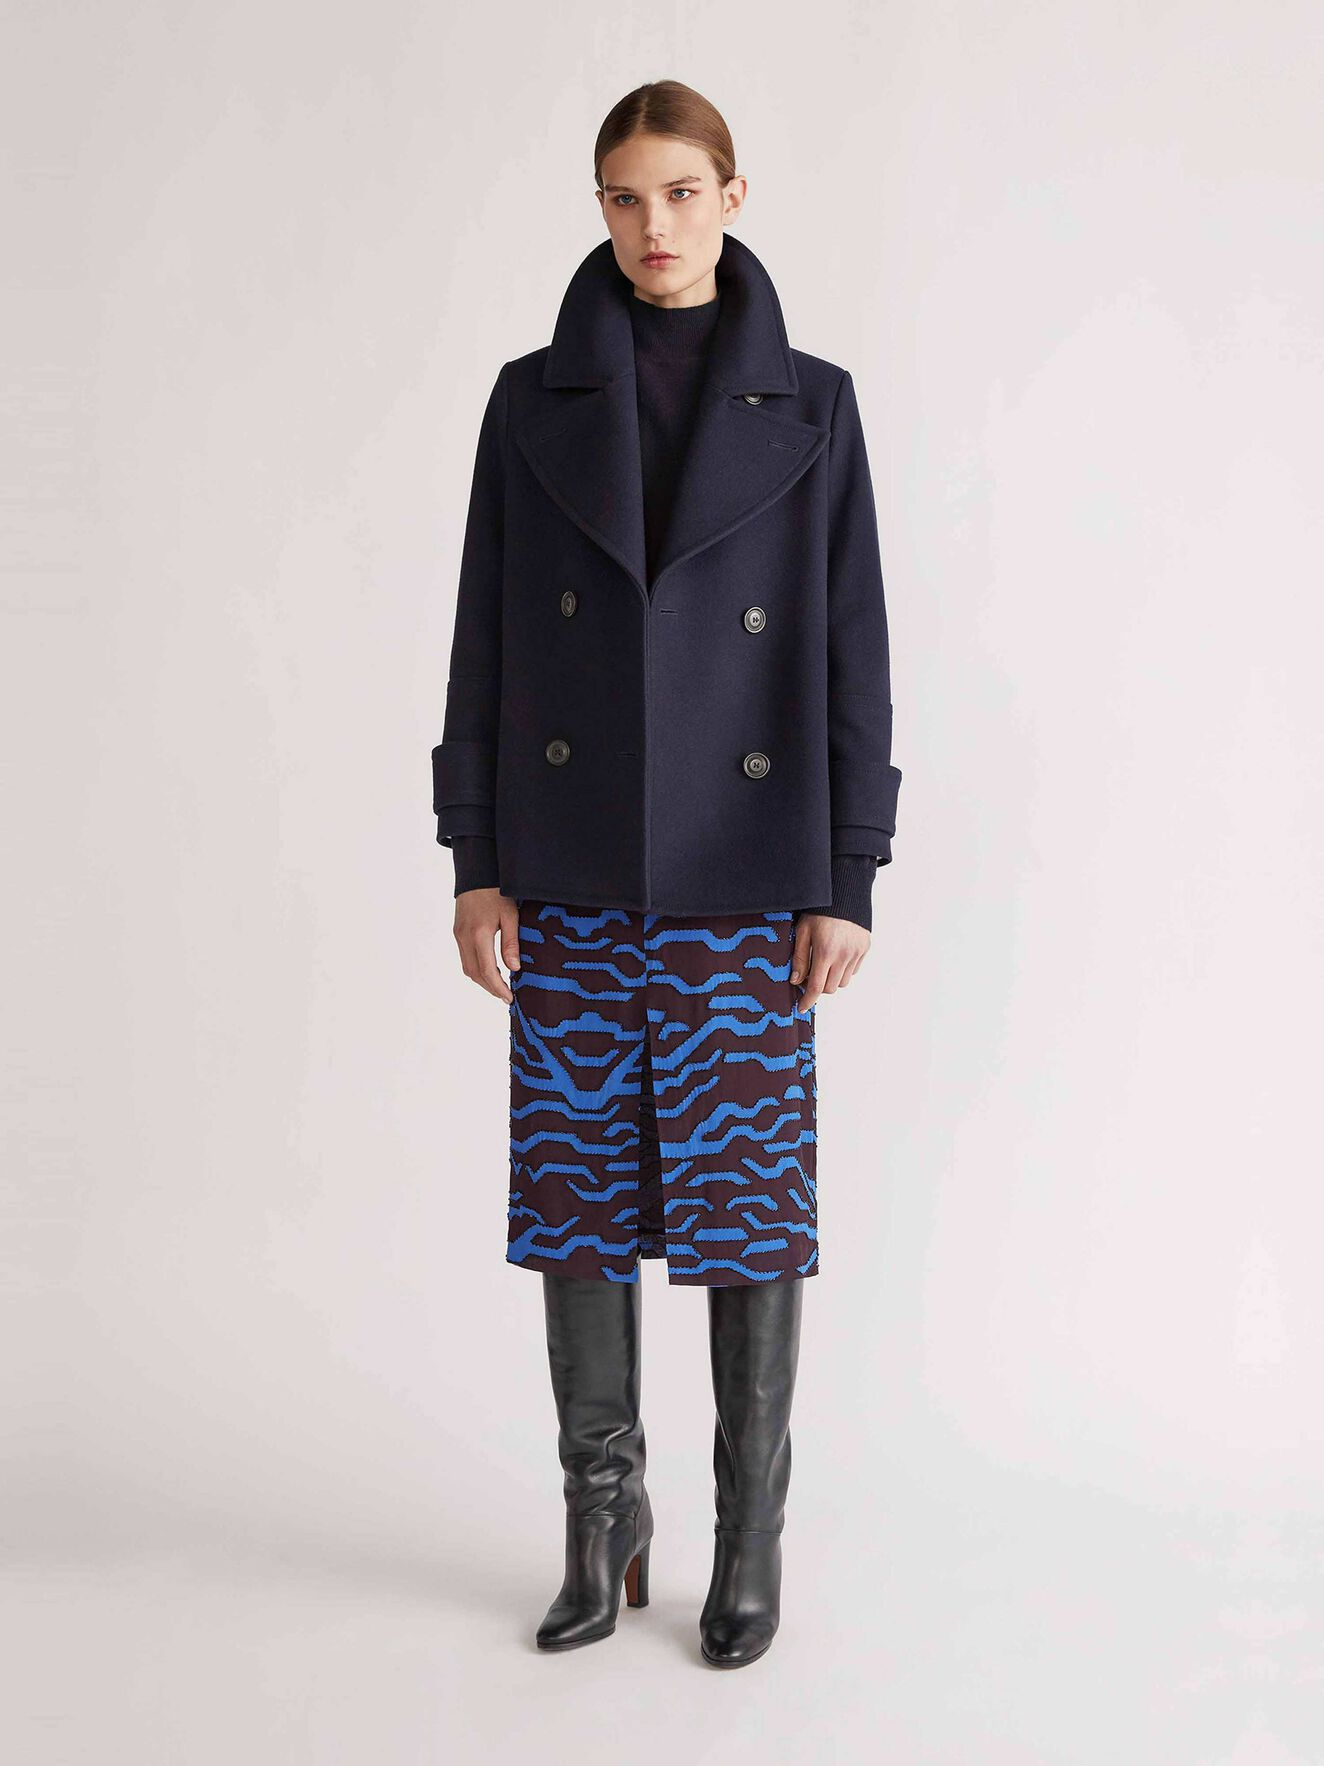 FW18 in  from Tiger of Sweden